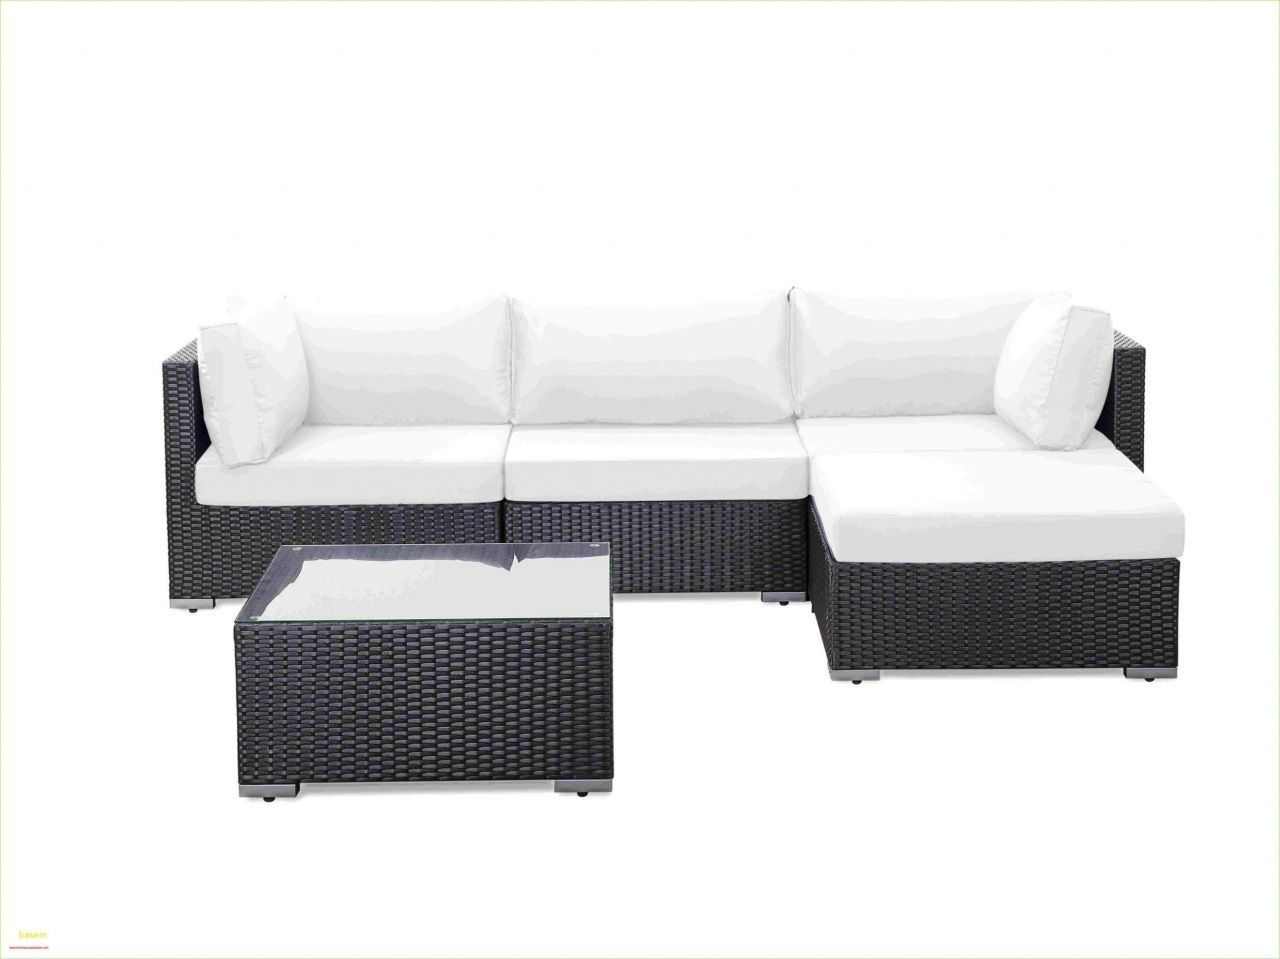 Home Depot Patio Furniture Clearance Sale Clearance Depot